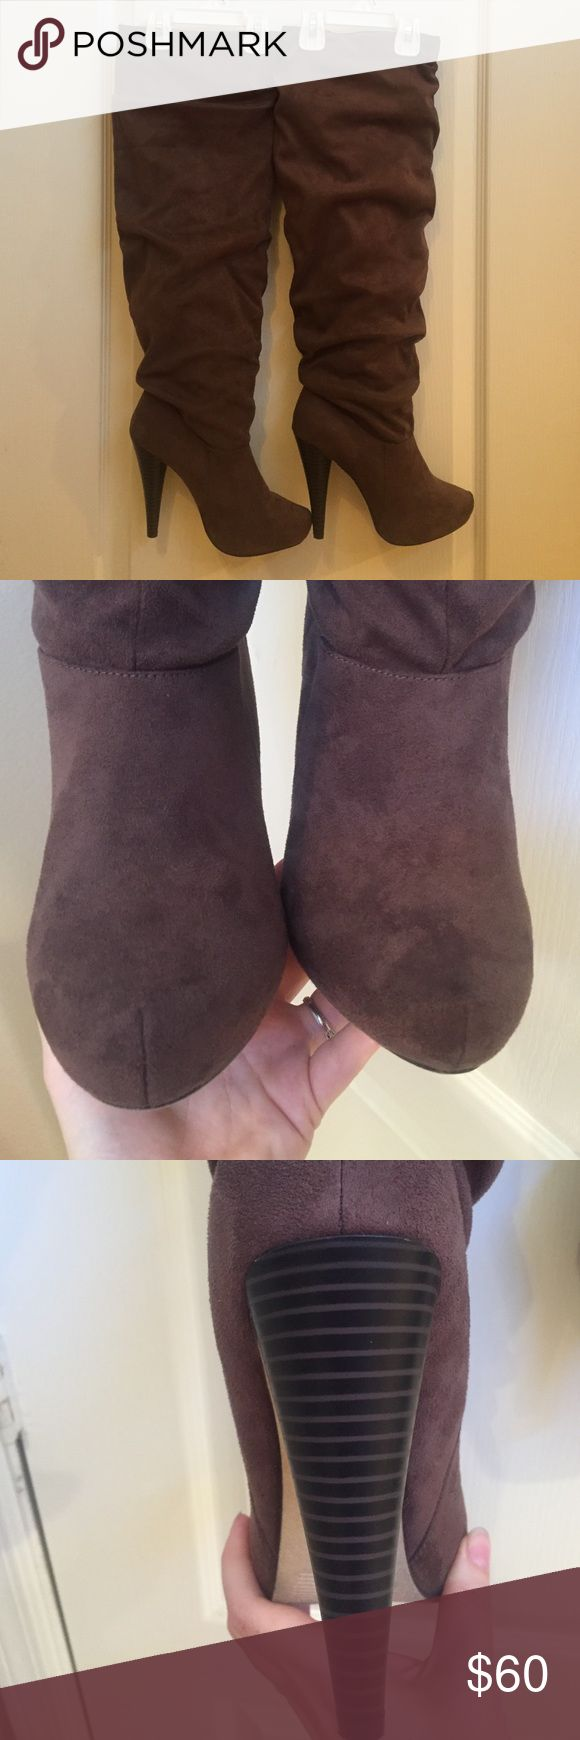 Size 8.5 Michael Antonio brown over the knee boots These are brand new never worn out only in the house.  They are a soft suede like material.  They have a 15 1/2in circumference.  Heel height measured from the outside of heel is 5in. Michael Antonio Shoes Over the Knee Boots